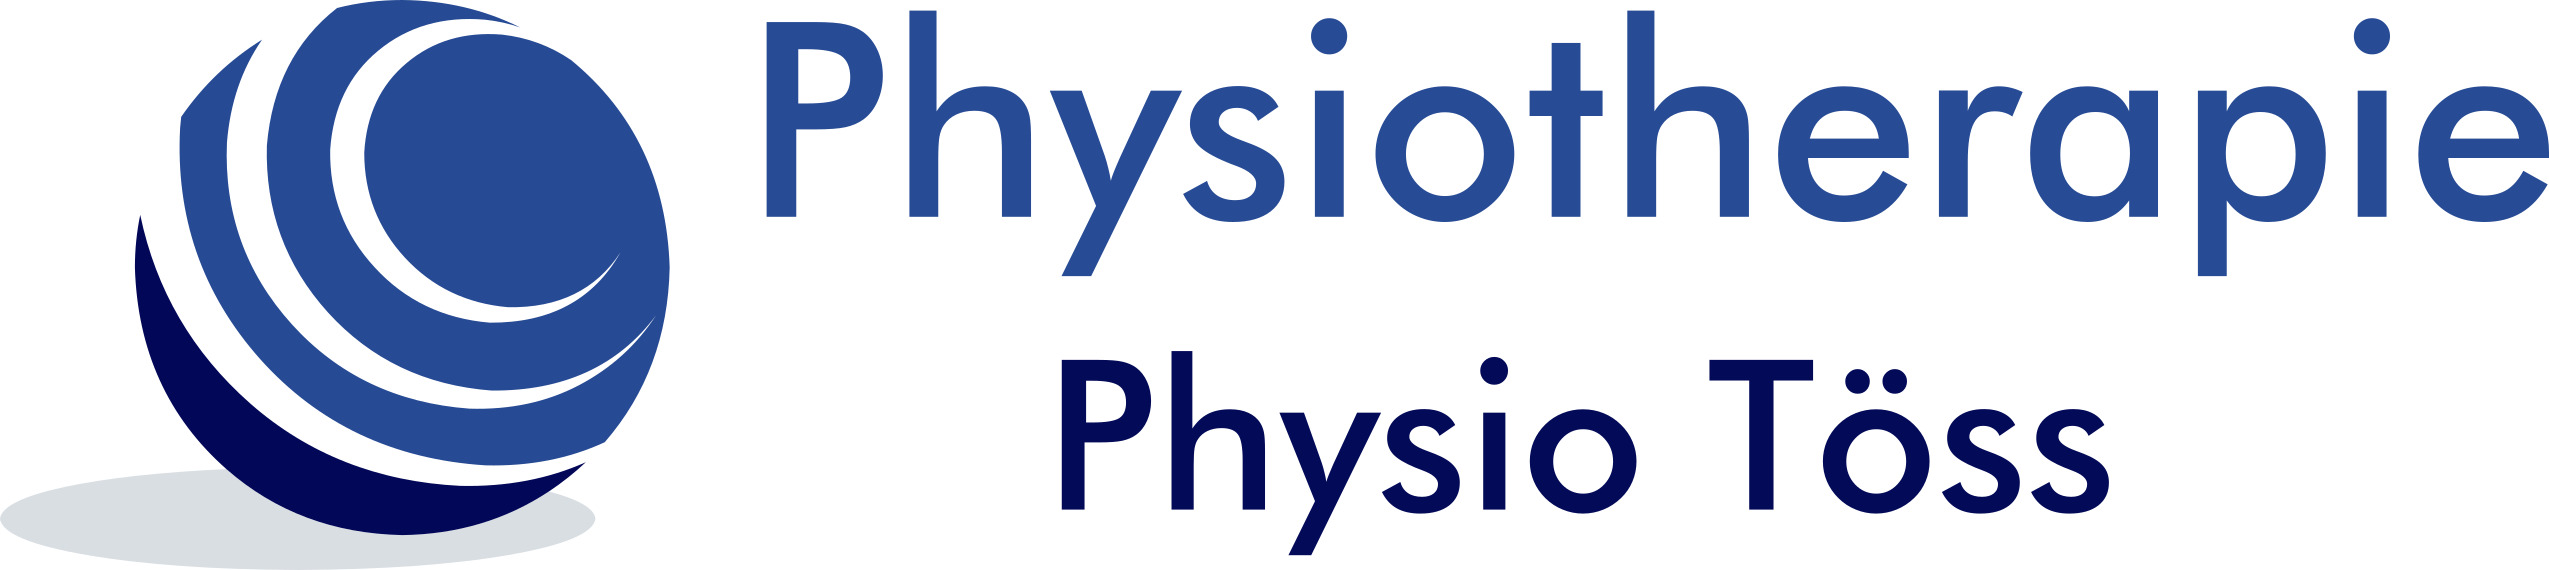 Logo - Physiotherapie Physio Töss